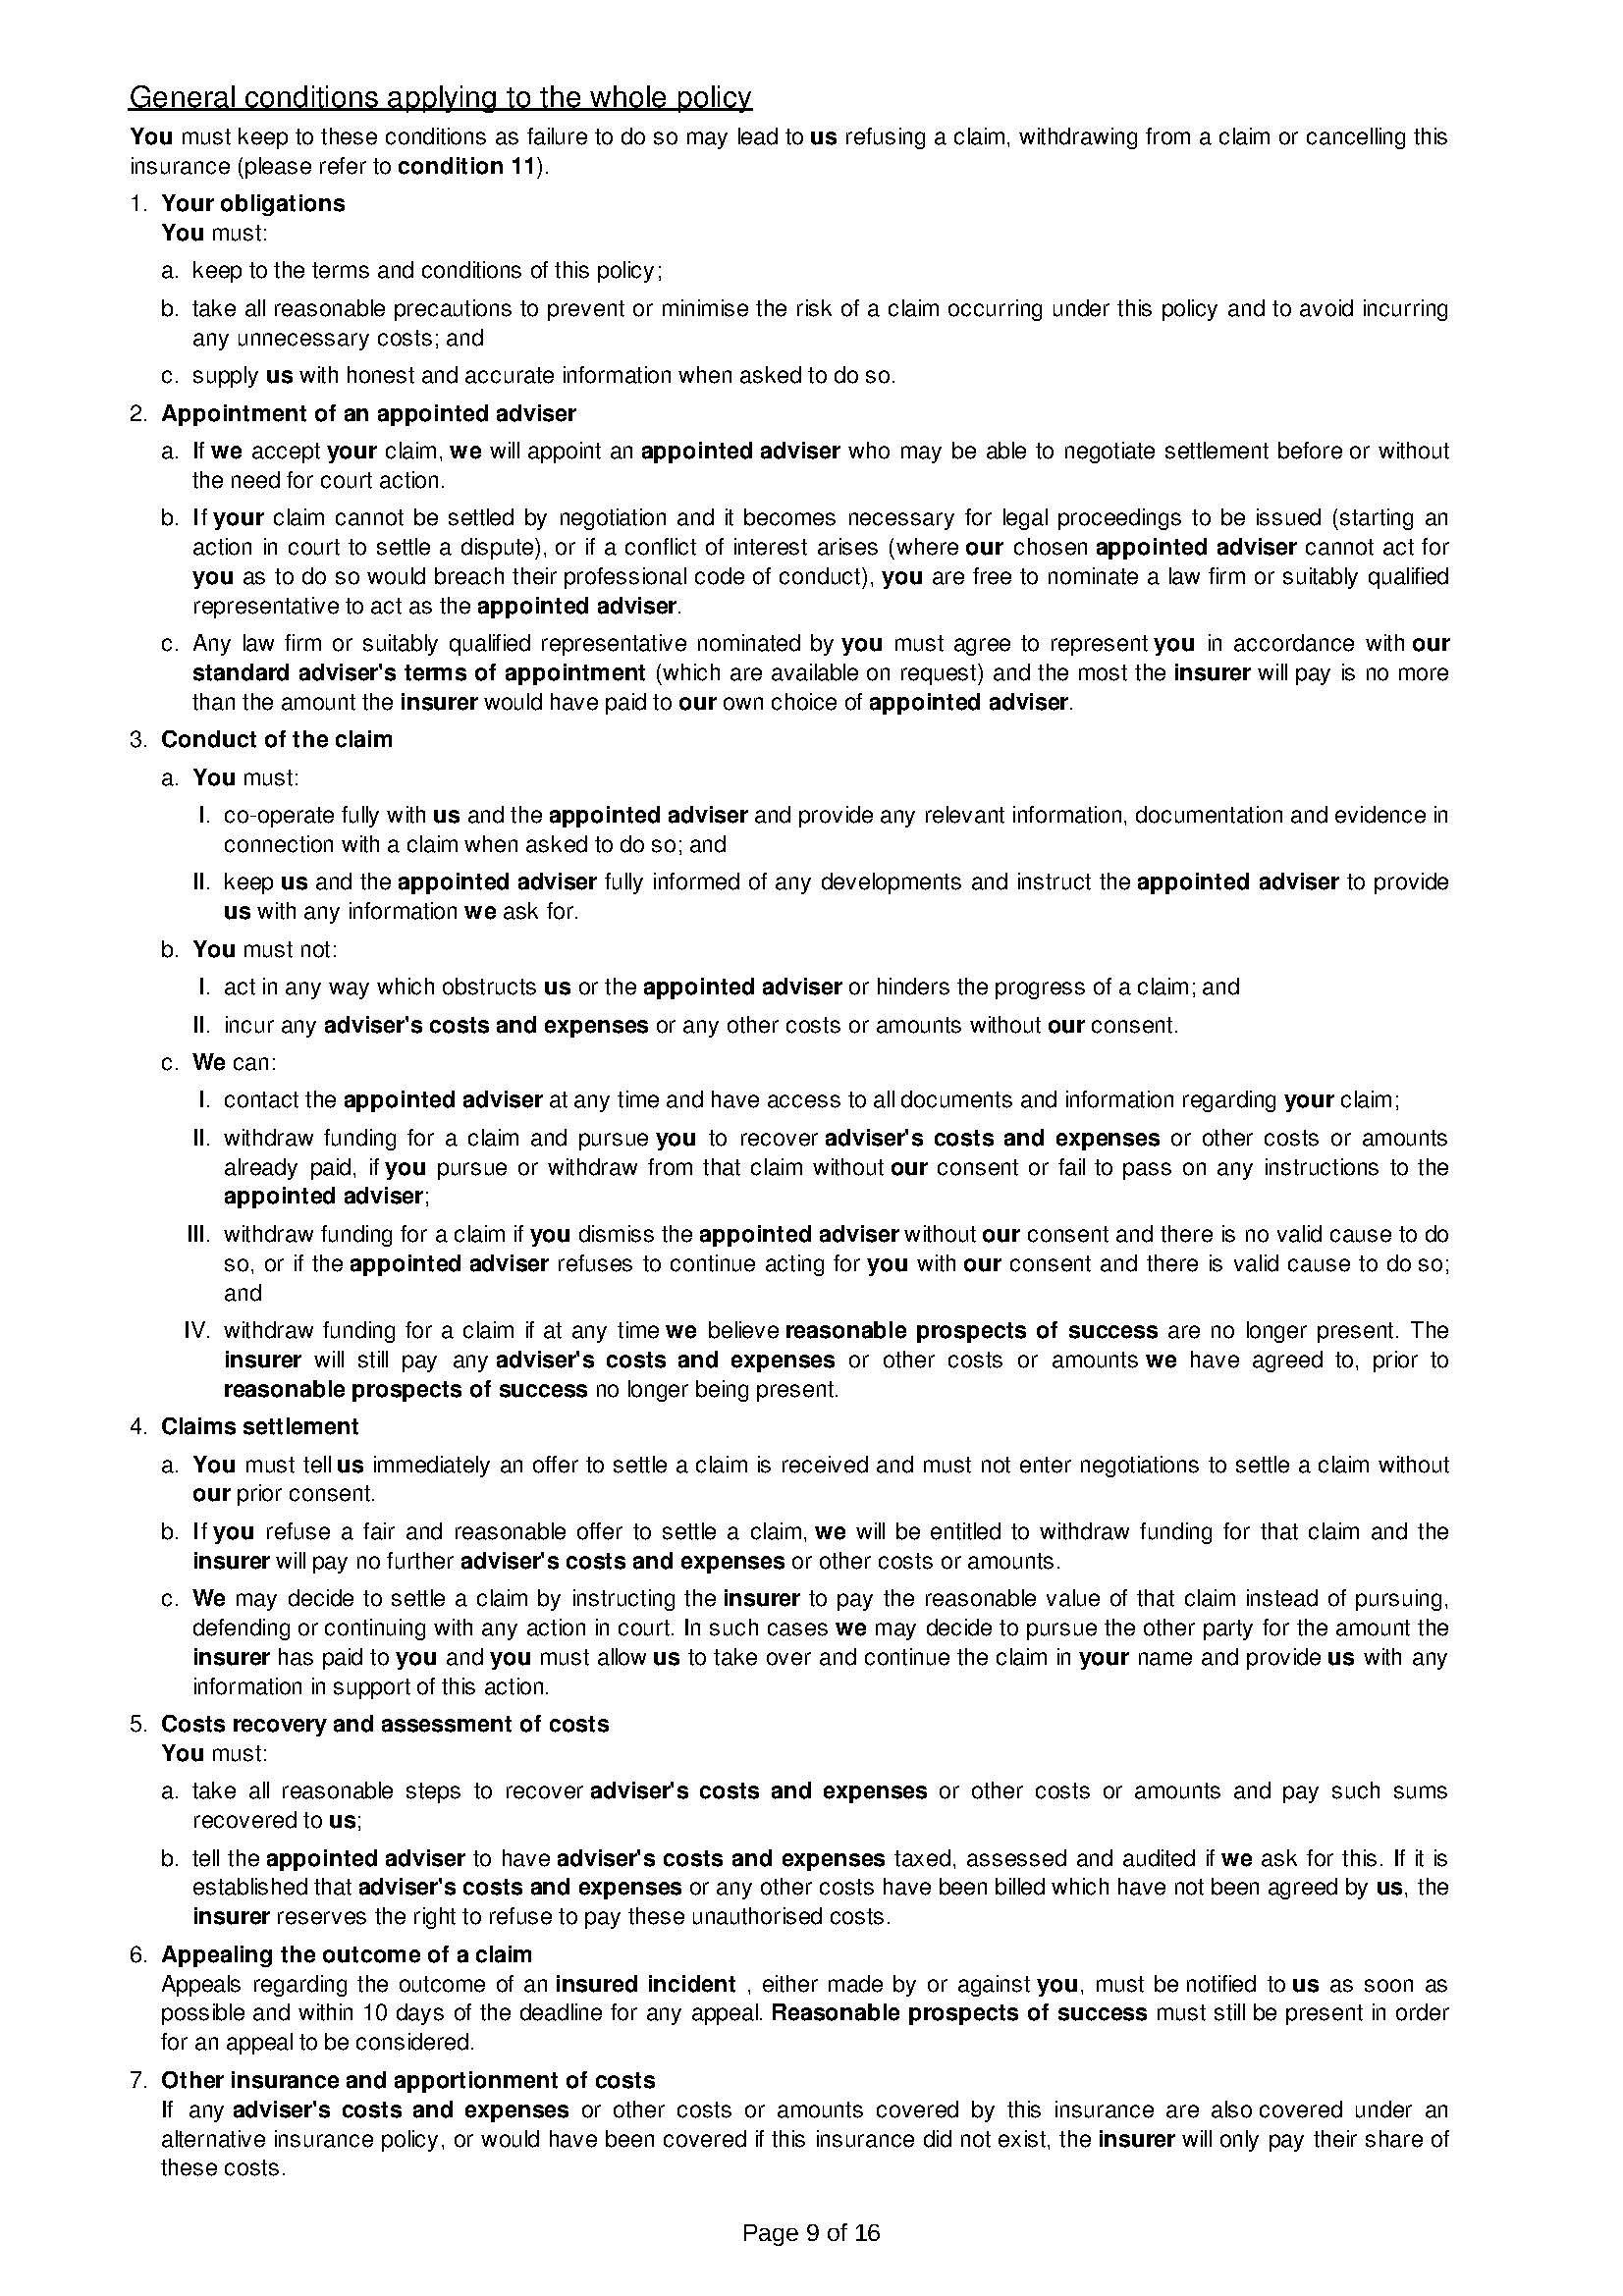 insurance_policy_02_page_09